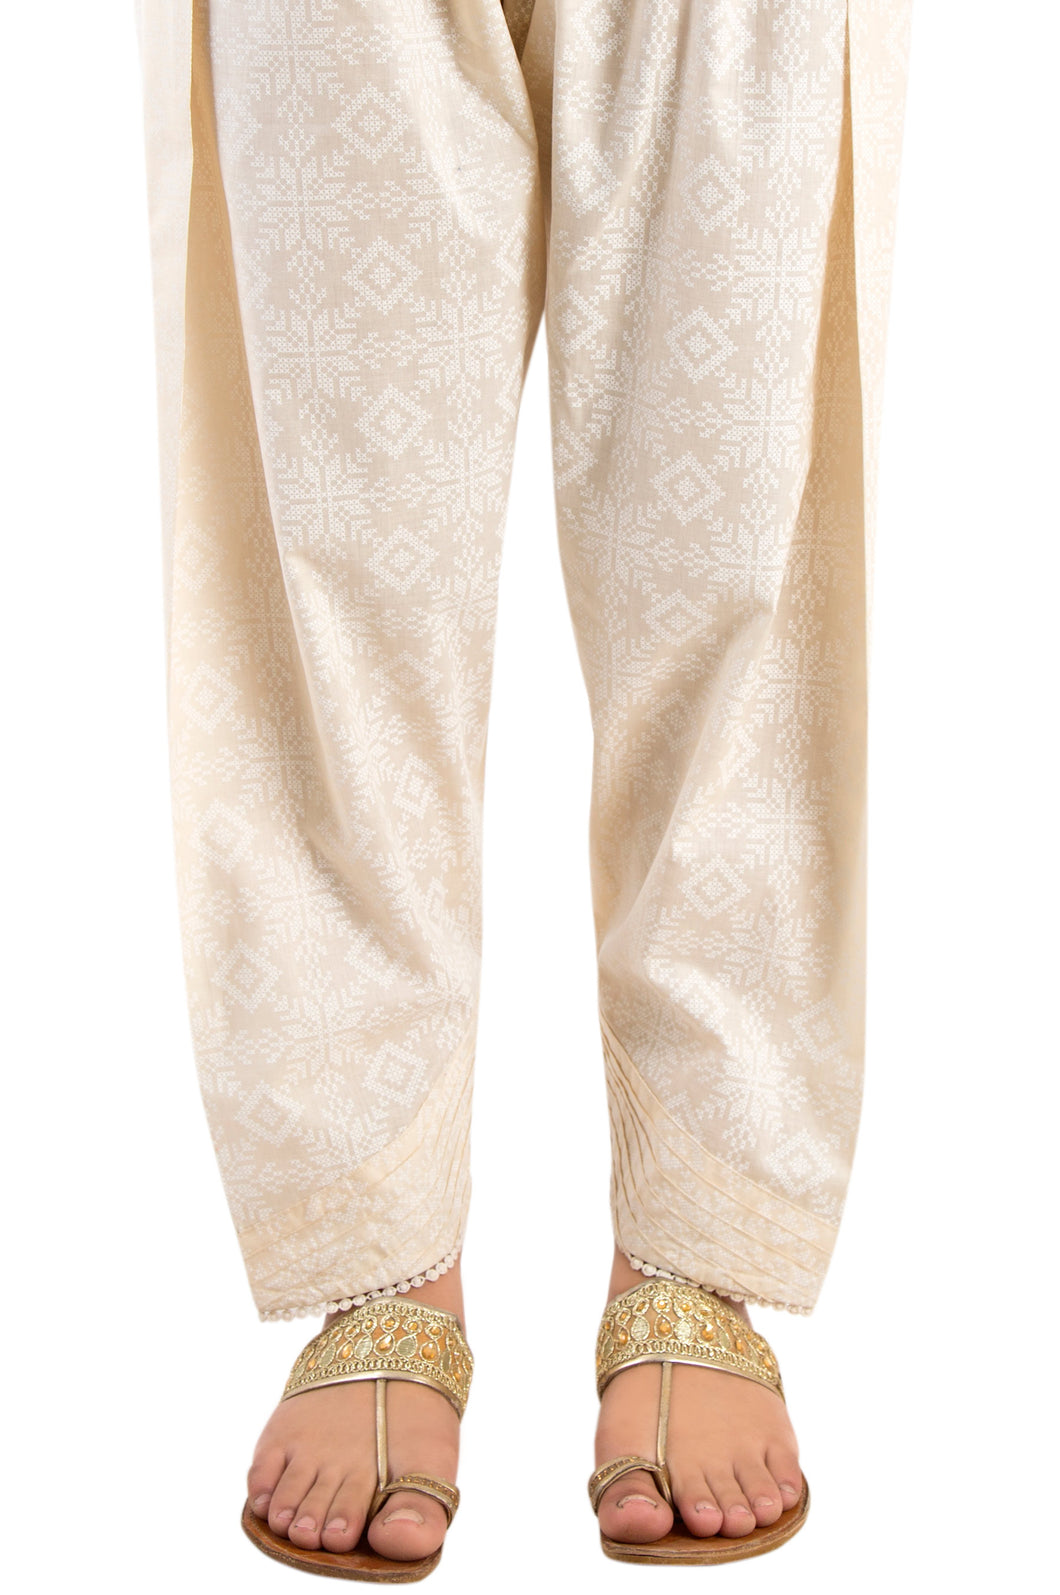 Embellished Narrow Shalwar - White Paste/Beige